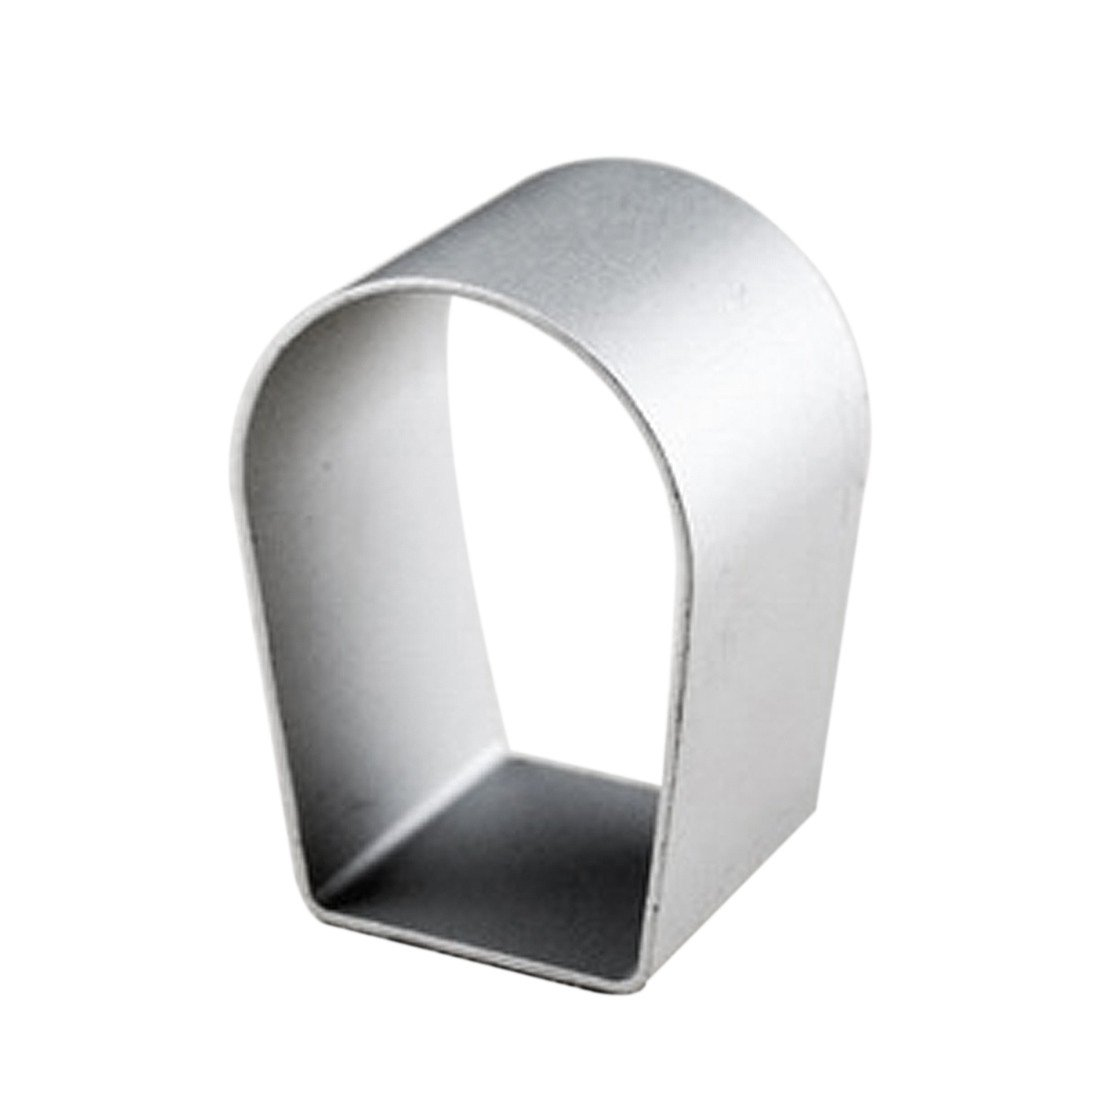 joyliveCY Aluminum Fondant Decoration Cooky Biscuit Cutter Cake Tool Sugar Craft Diy Mould Model=Arch Shaped Cy-buity